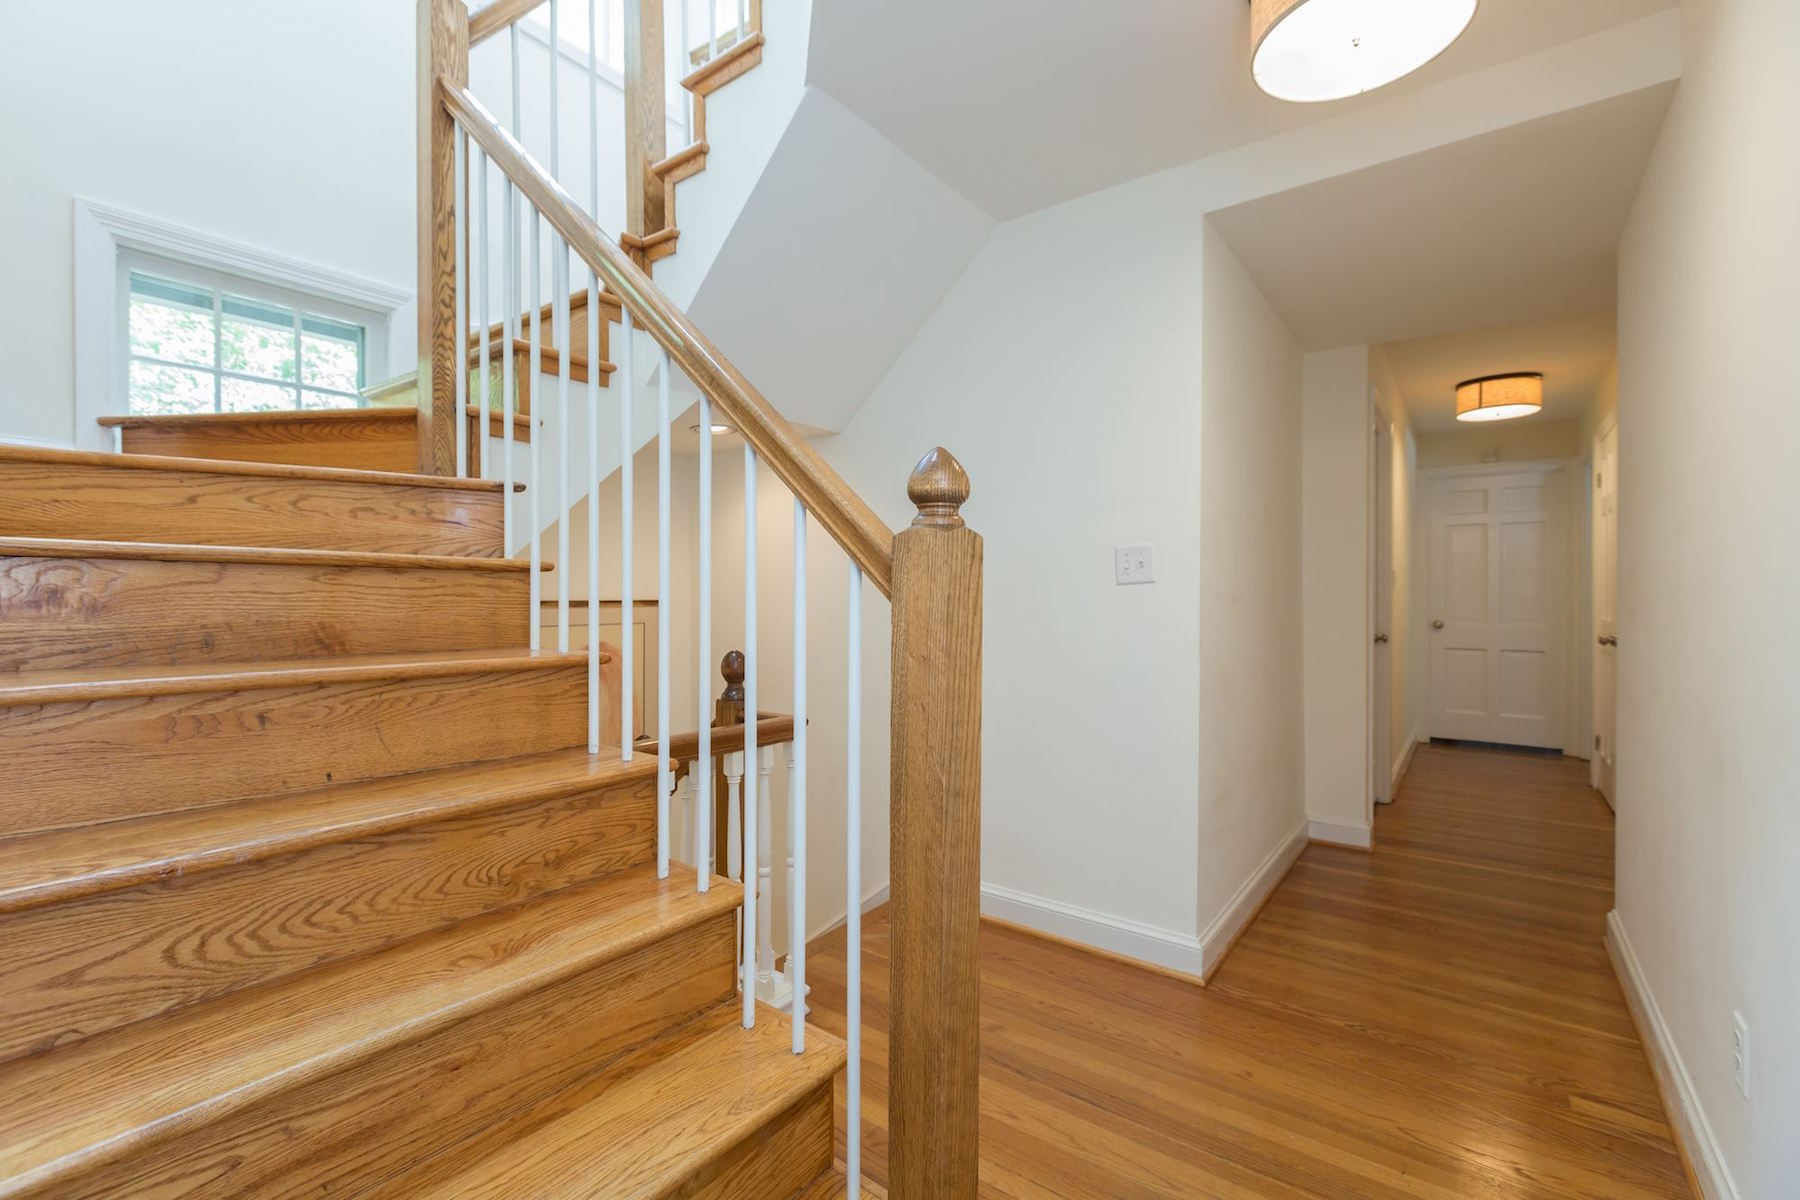 Additional photo for property listing at 5153 Tilden Street 5153 Tilden Street Nw Washington, Округ Колумбия 20016 Соединенные Штаты